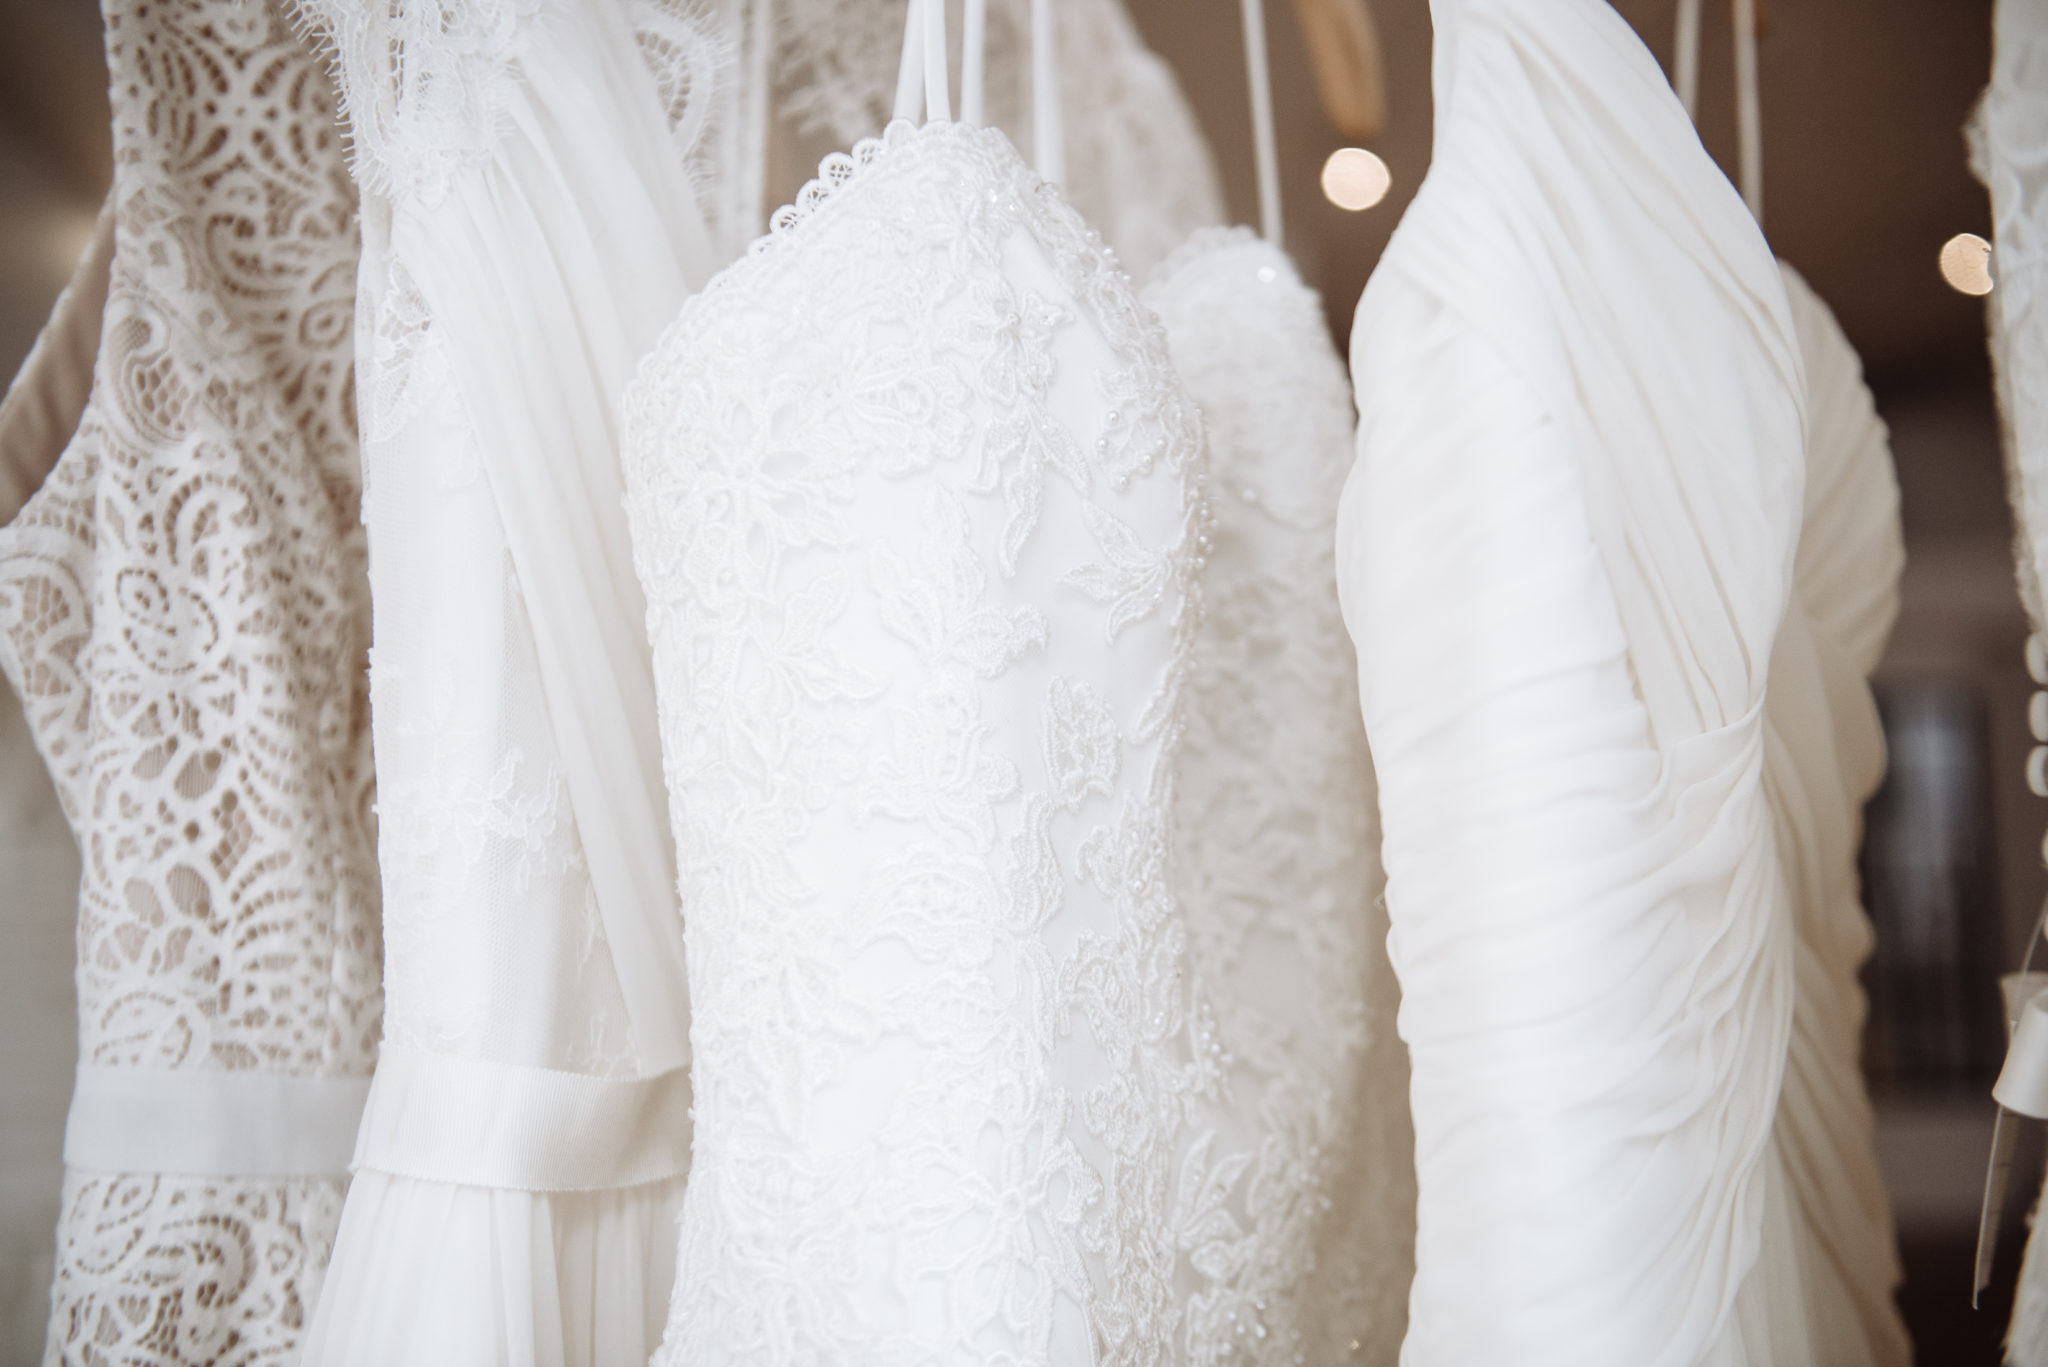 Four wedding dresses made from different fabrics hanging on a rack